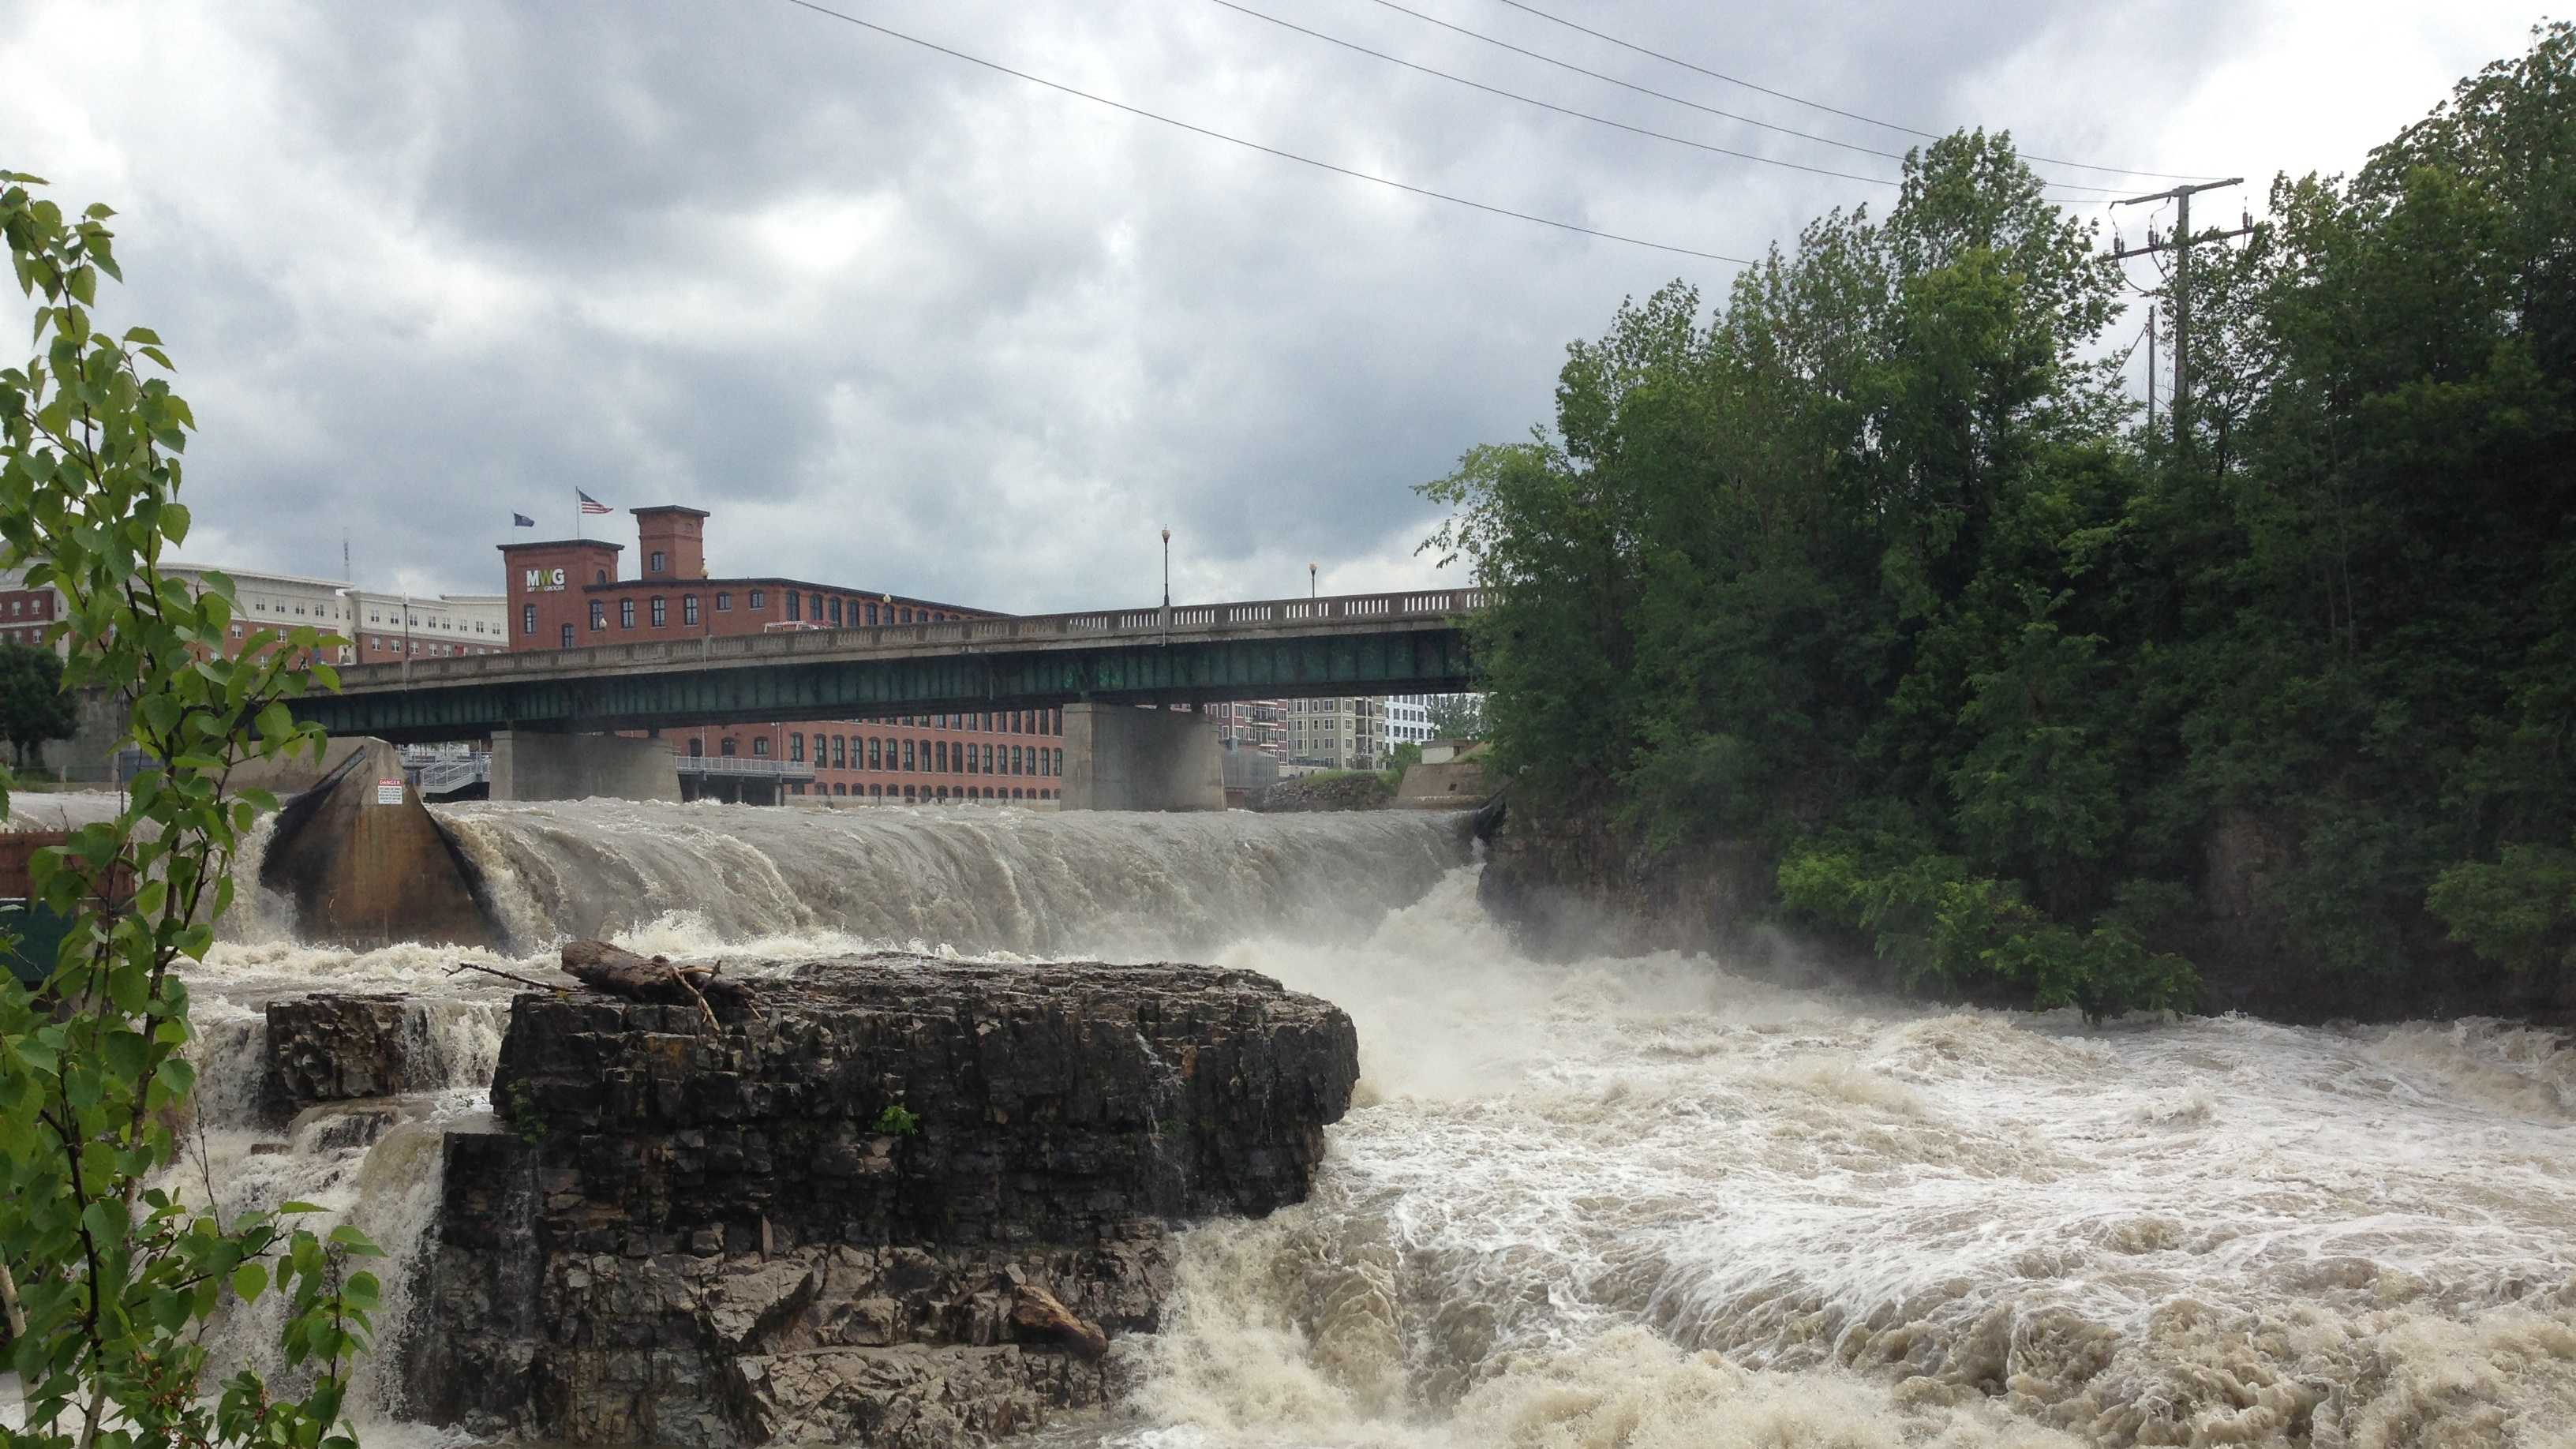 Storms trigger high water along the Winooski River in 2013.